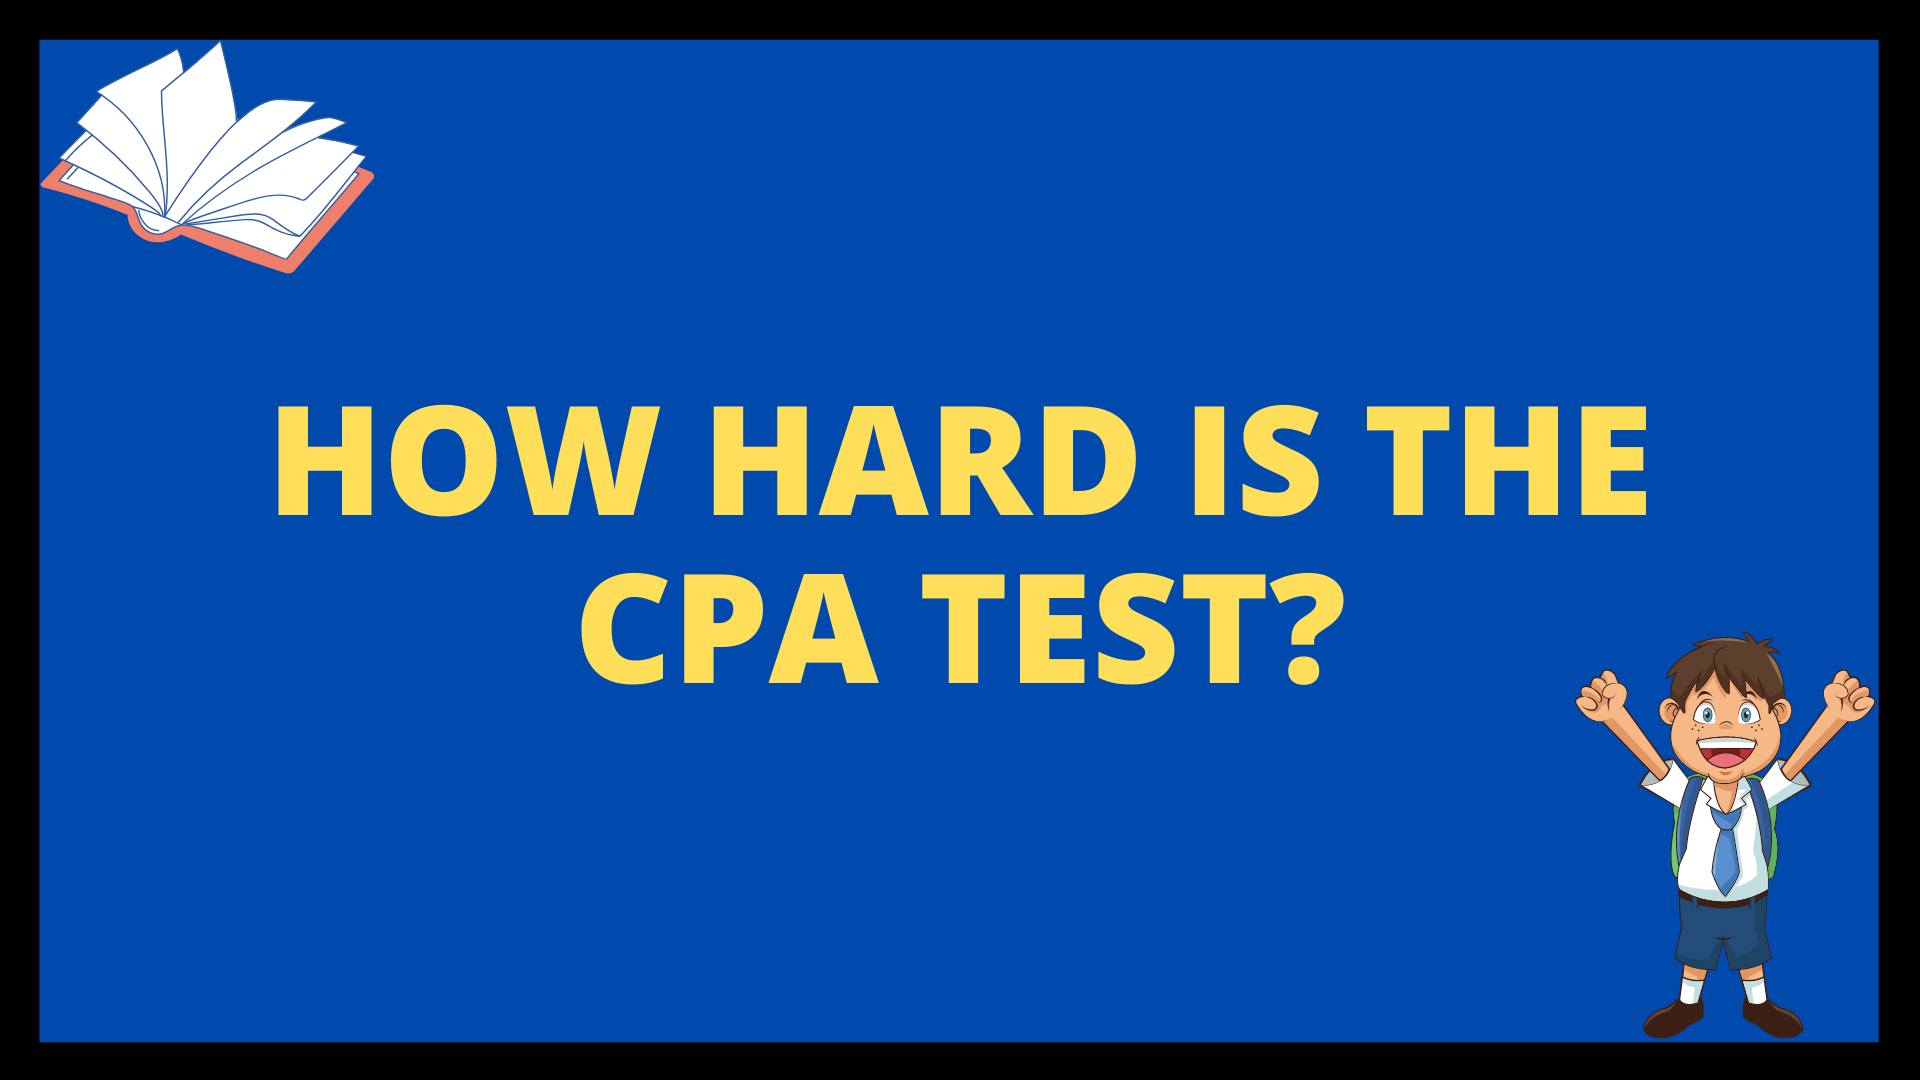 How Hard is the CPA Test?